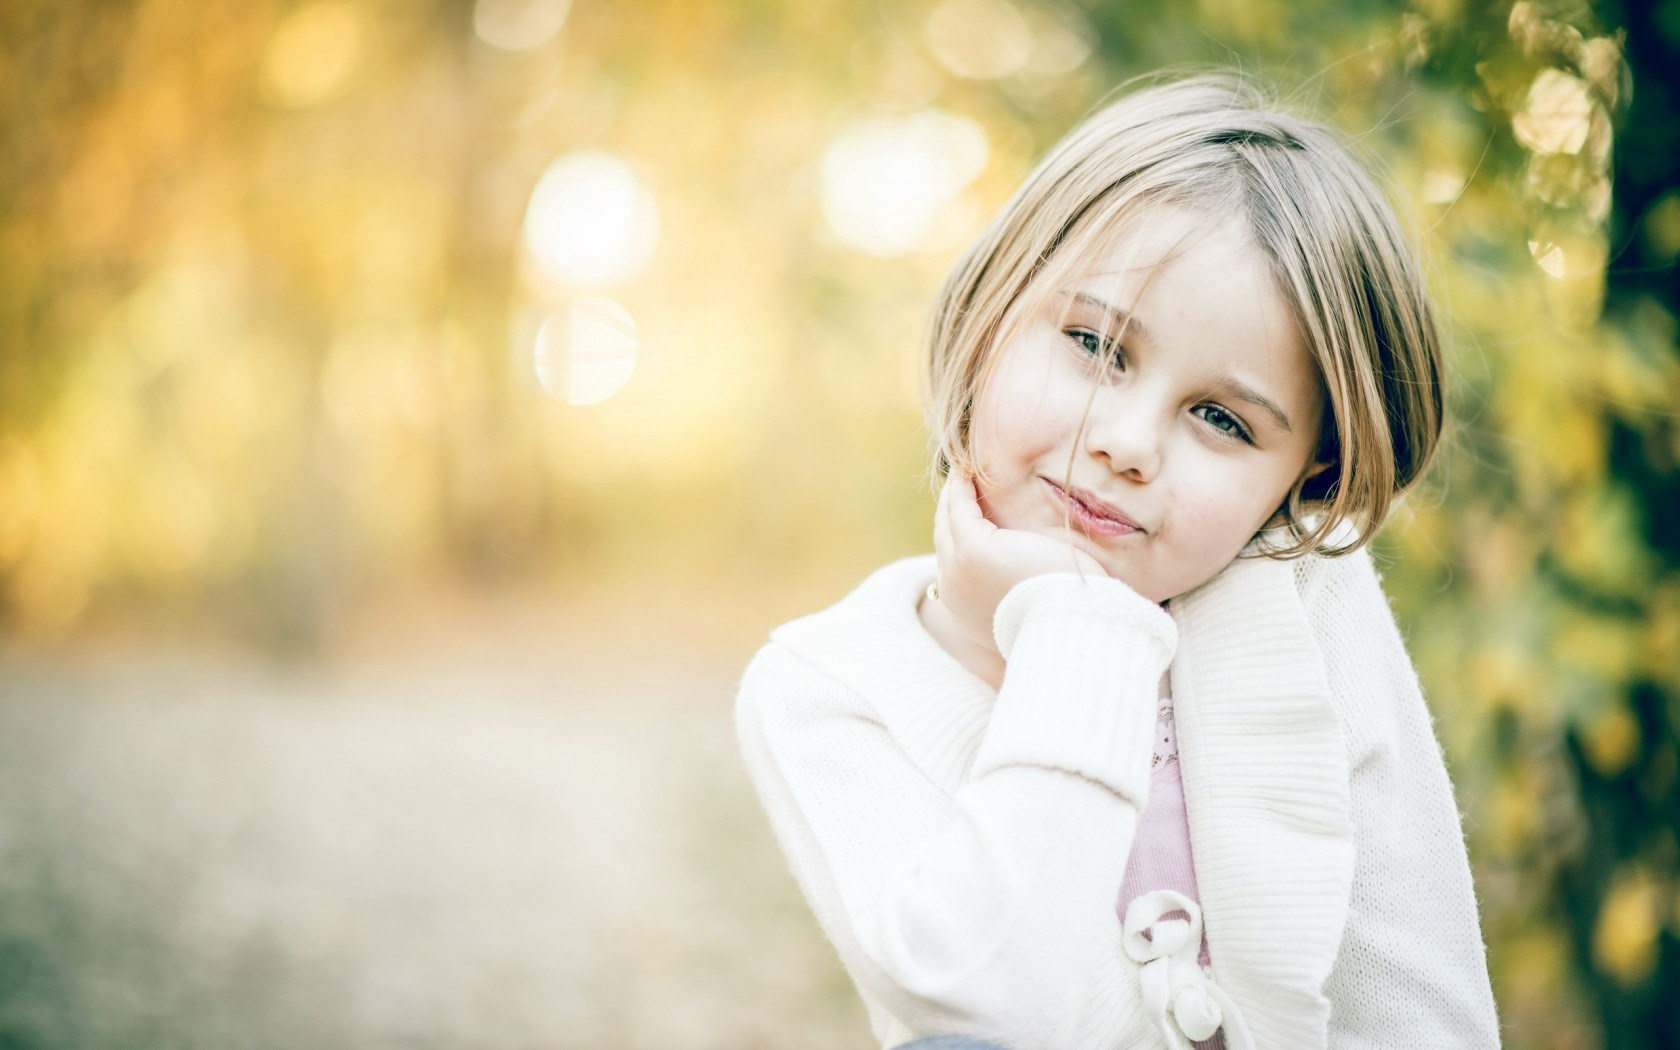 Beautiful Kid Girl Photography Wallpaper Wallpapers Gallery 1680x1050